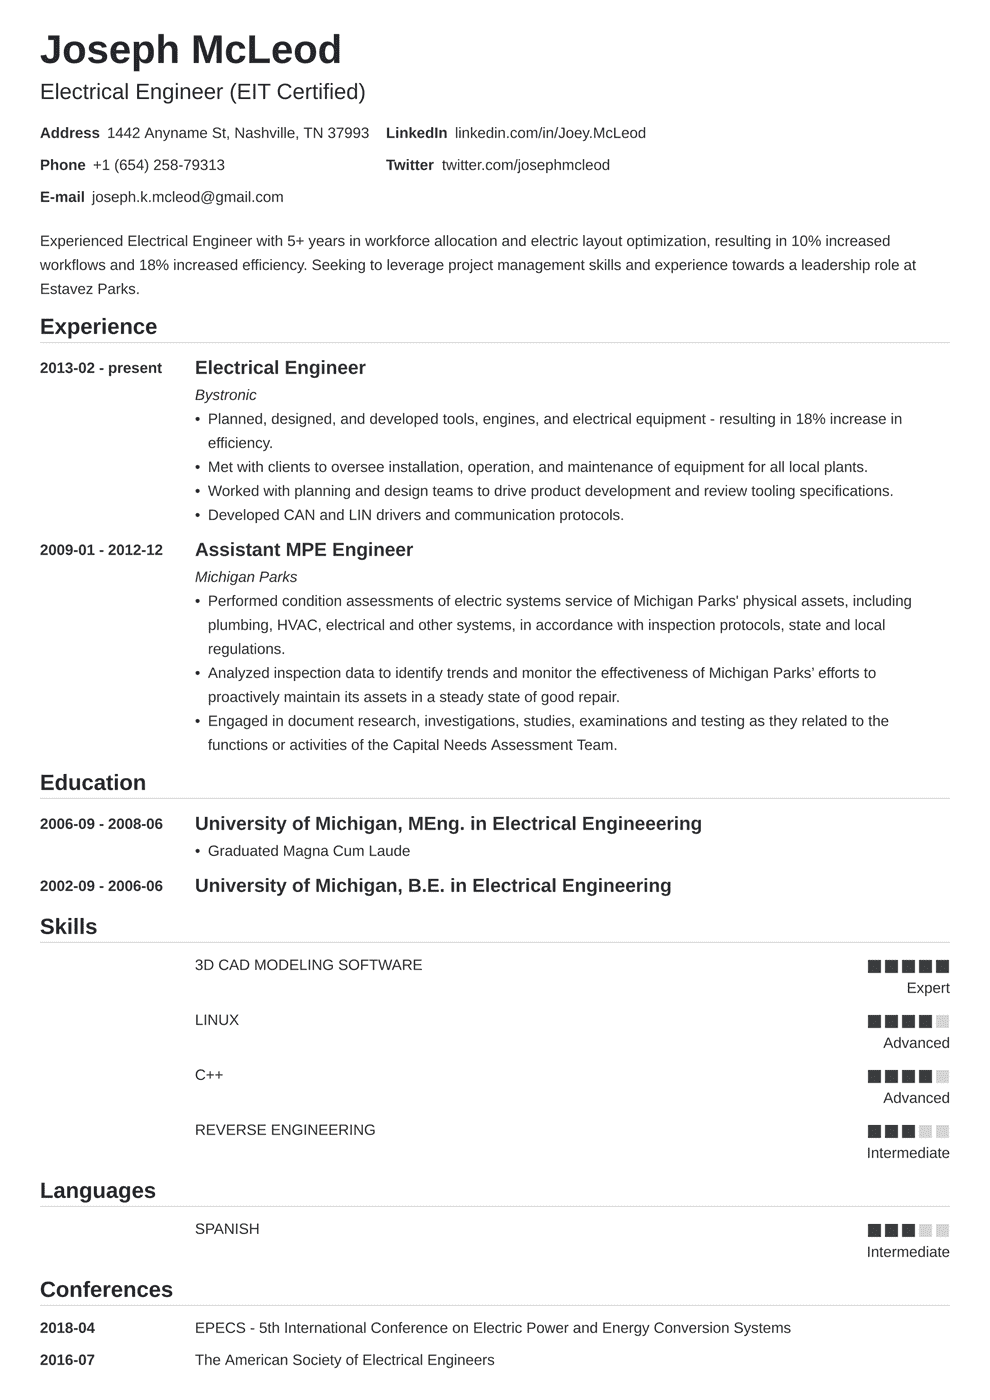 Electrical Engineering Resume: Sample & Writing Guide (20+ Examples)